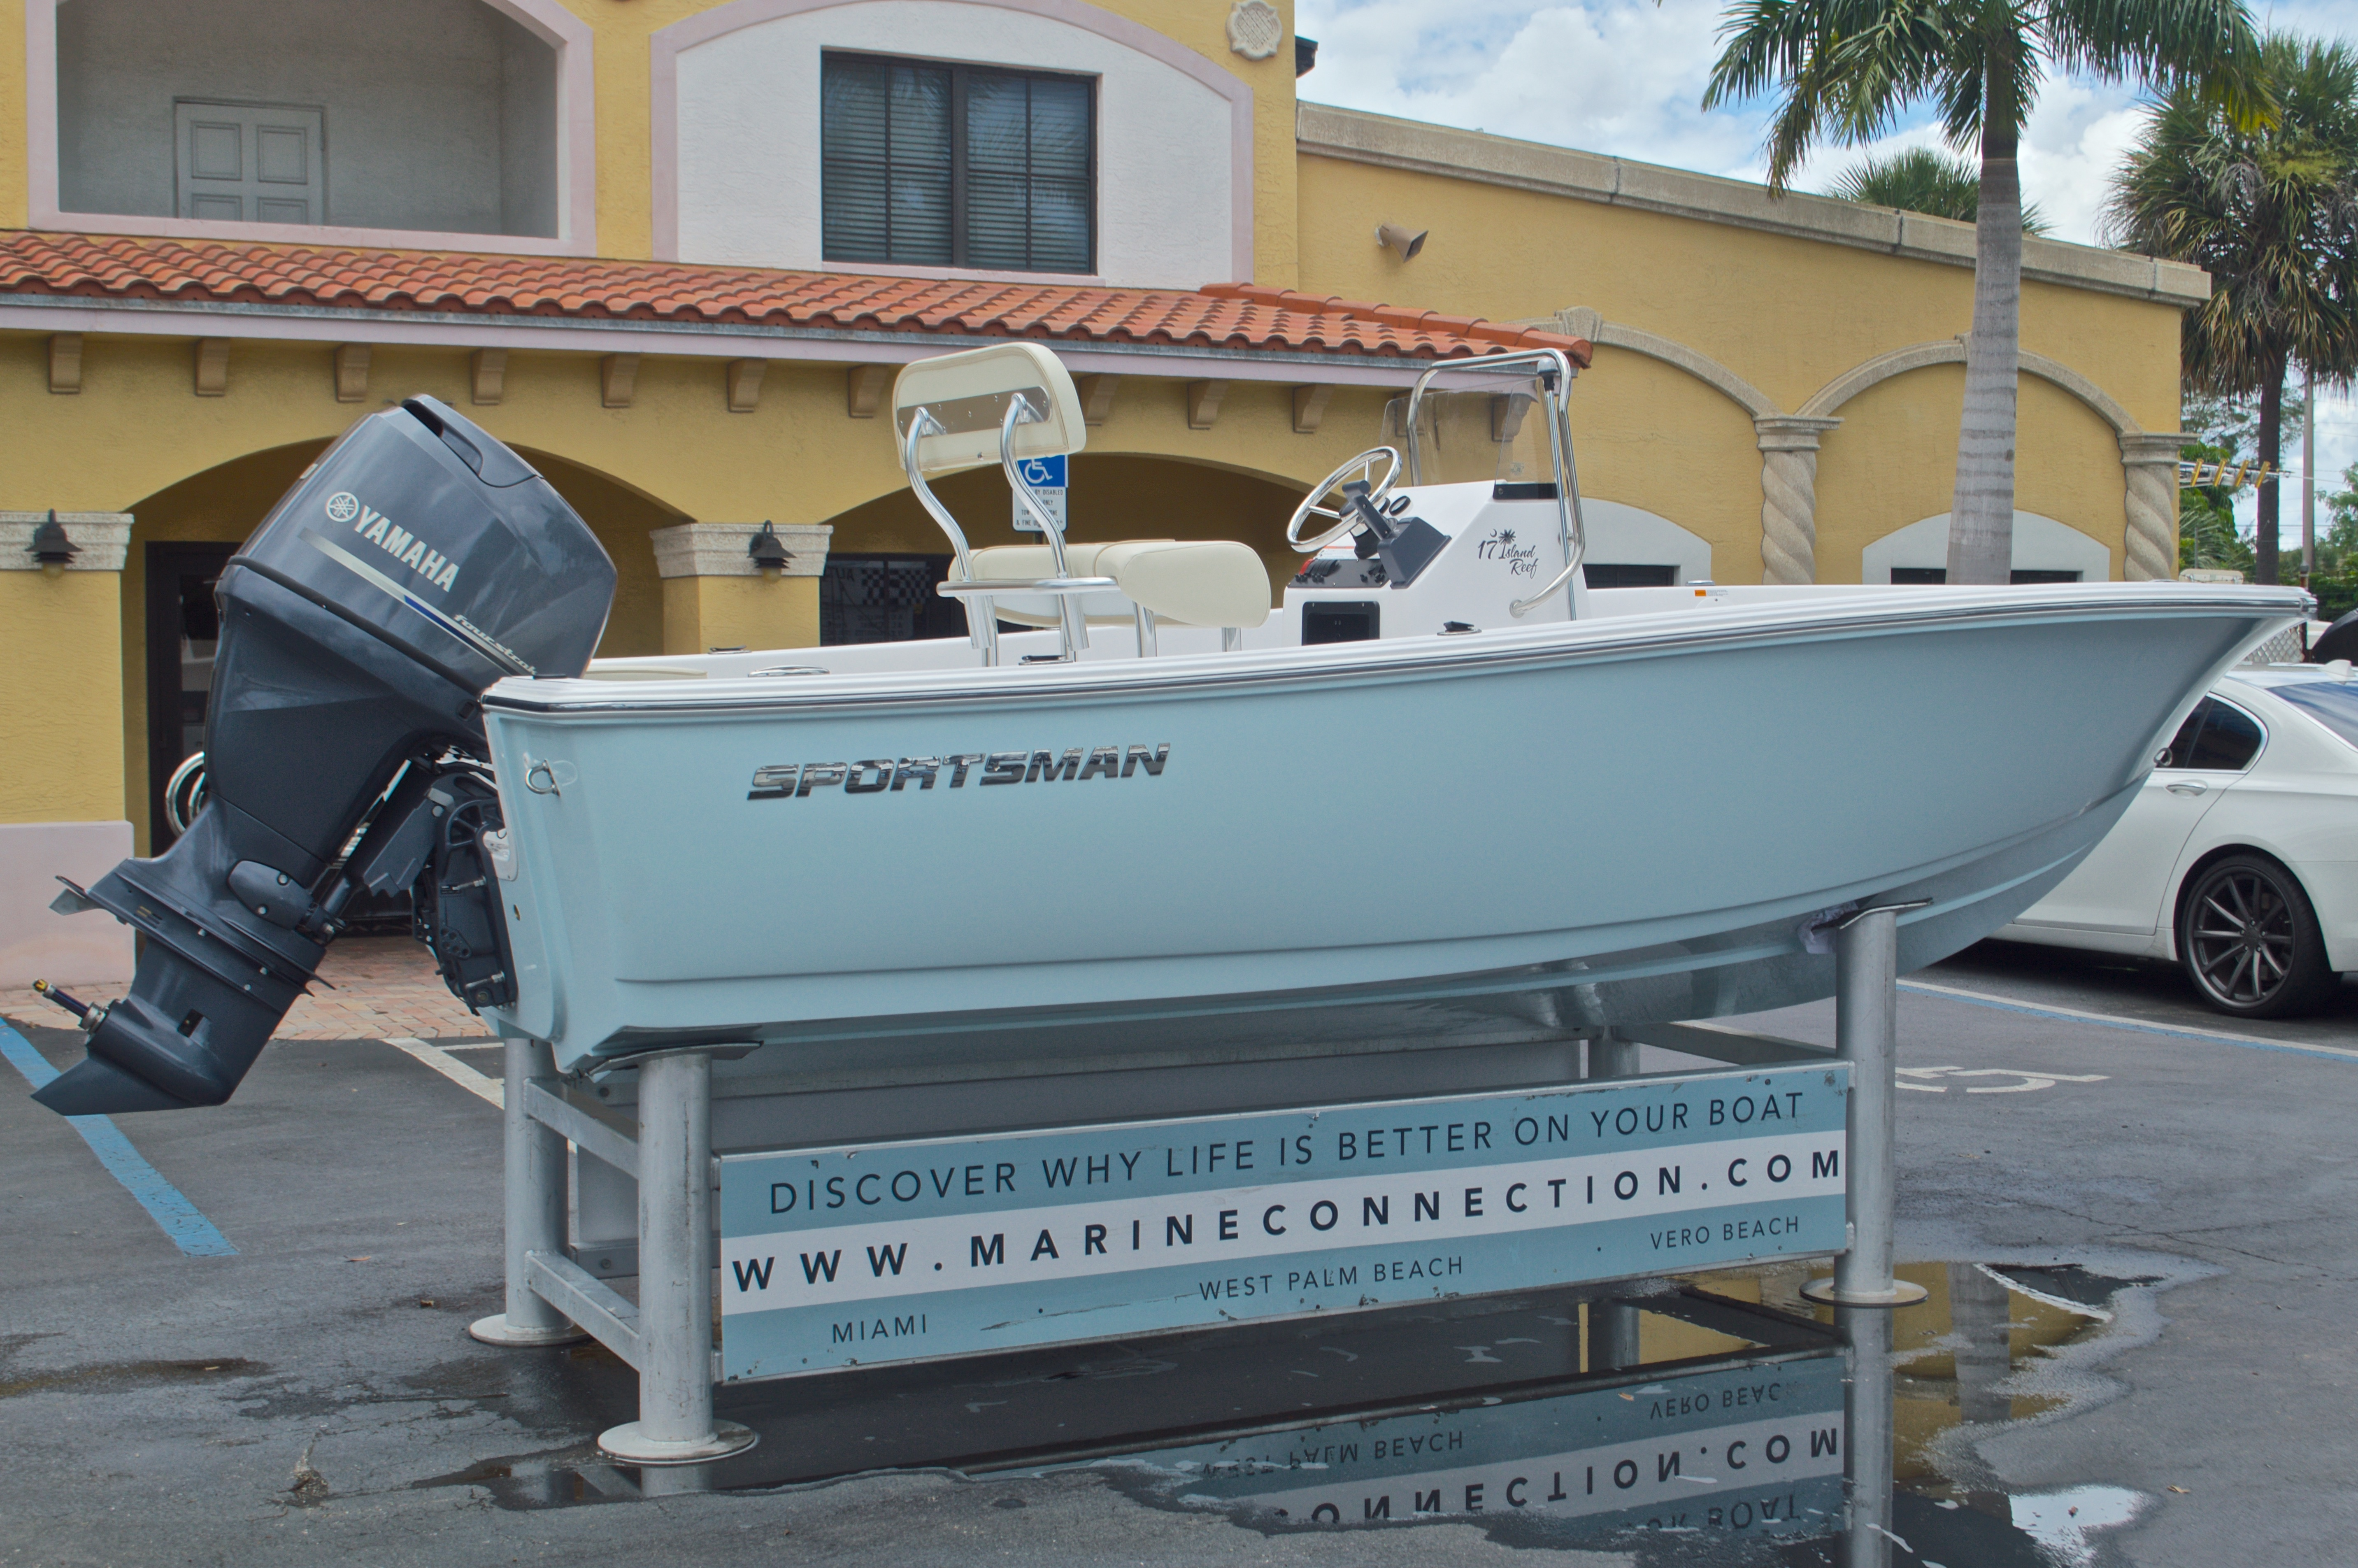 Thumbnail 7 for New 2016 Sportsman 17 Island Reef boat for sale in Miami, FL